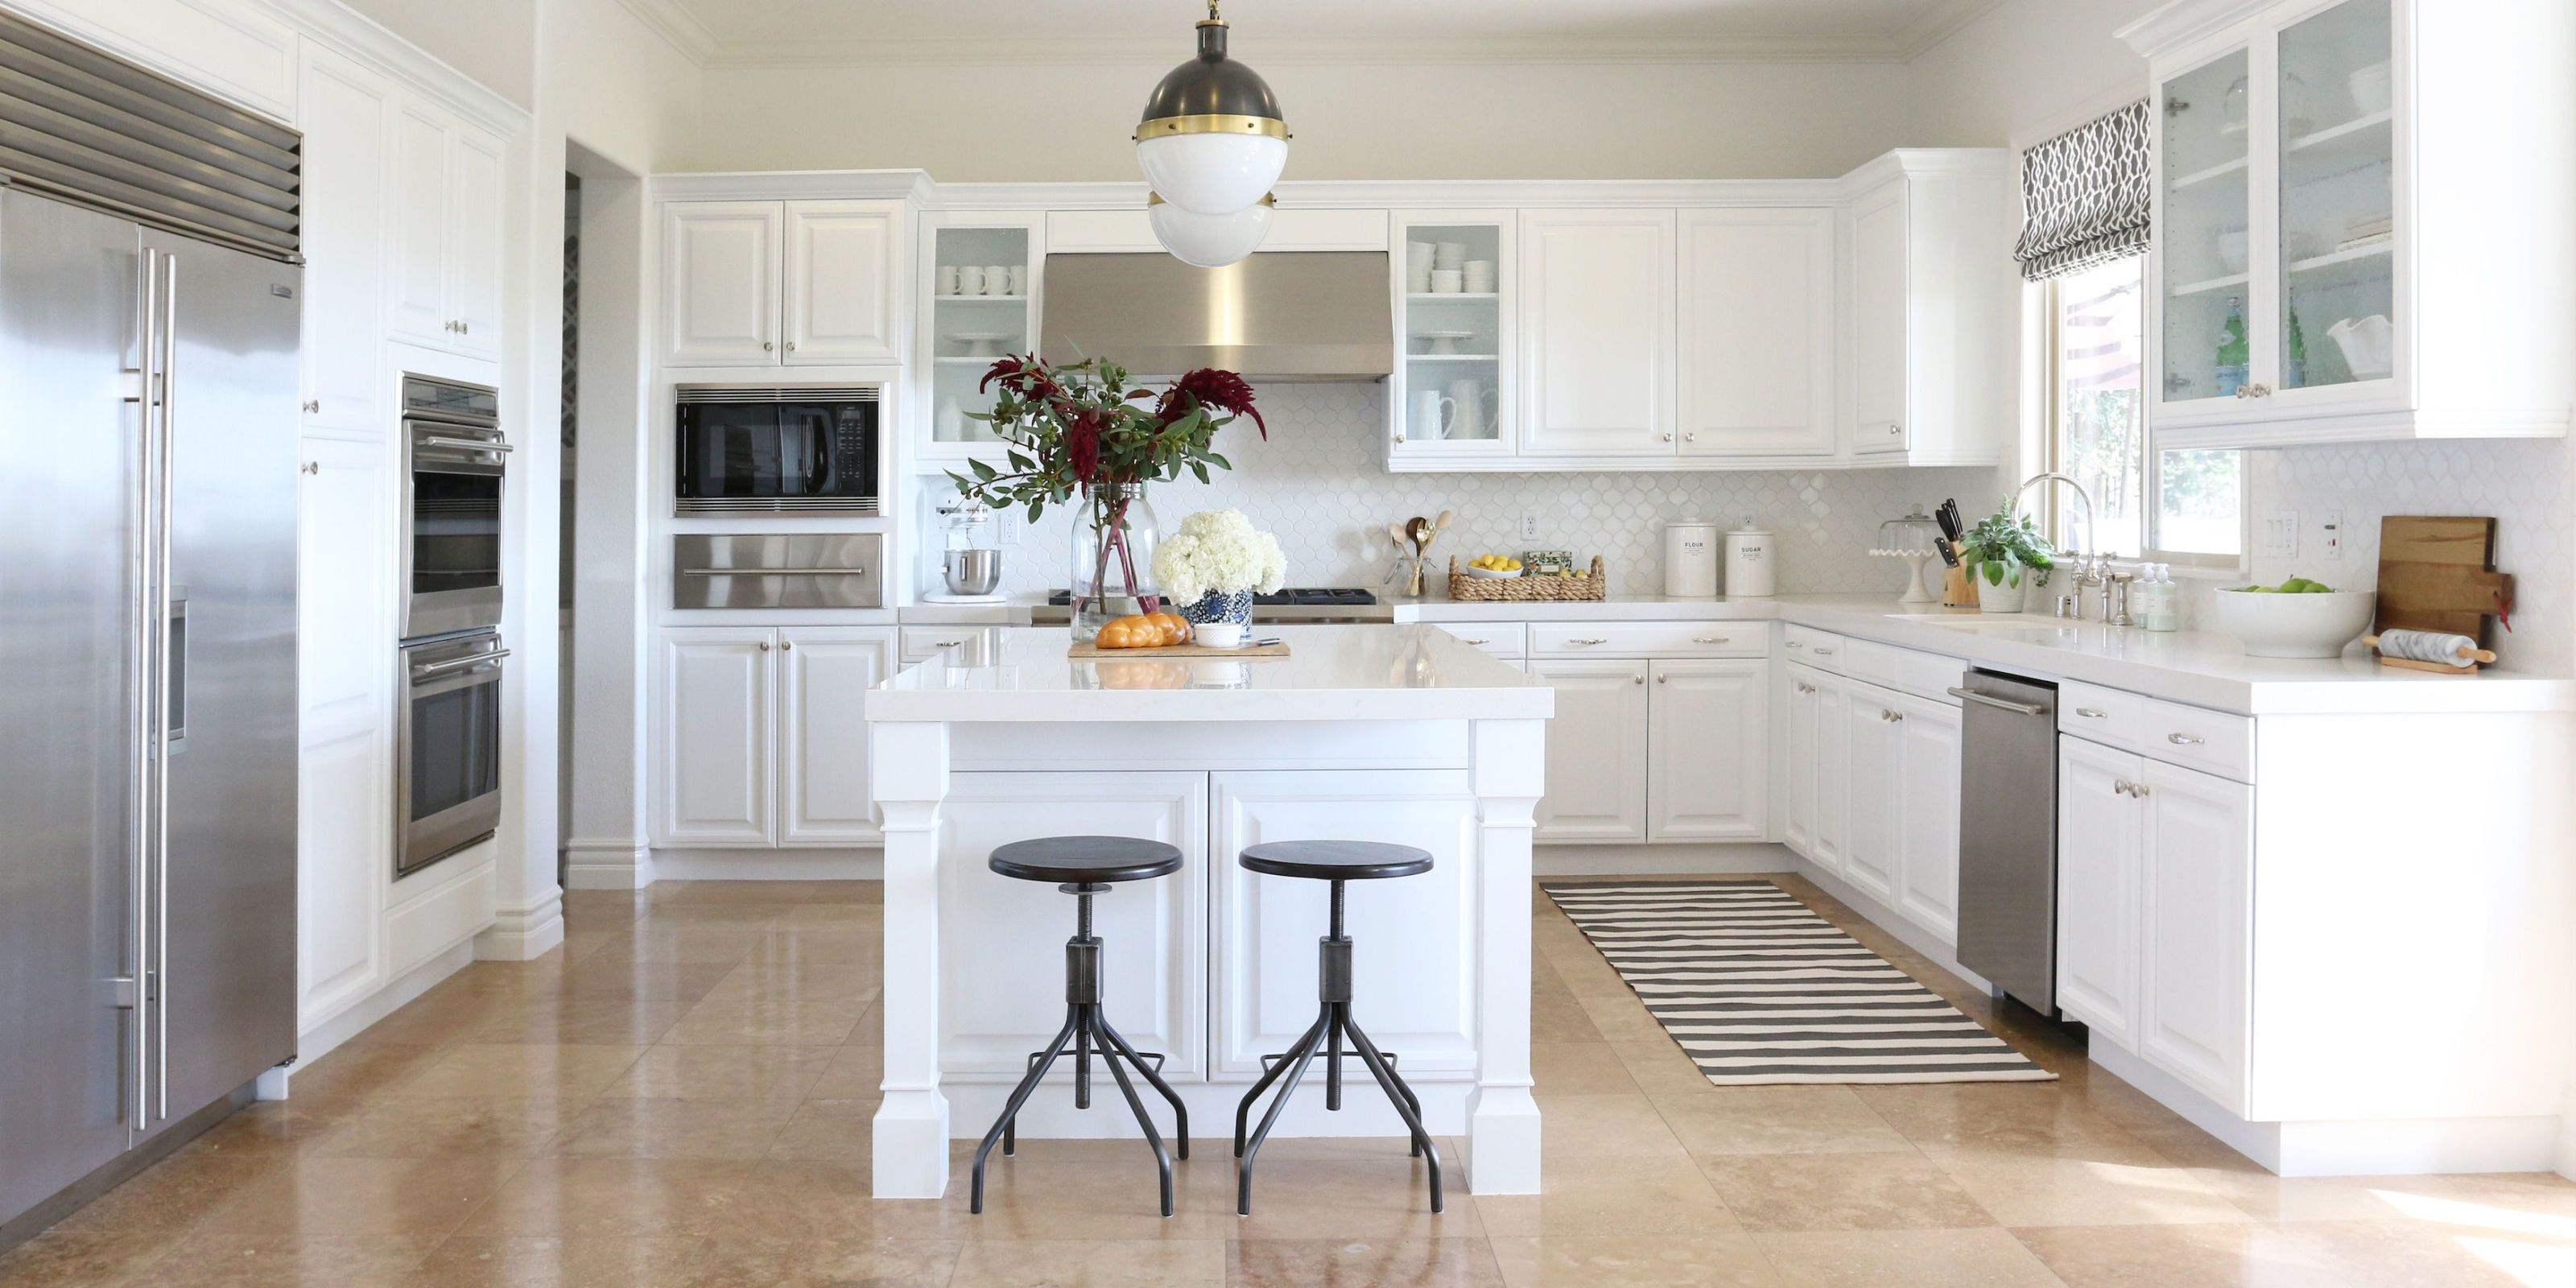 Merveilleux Bright, White Cabinetry Bounces Light And Makes For A Modern Kitchen.